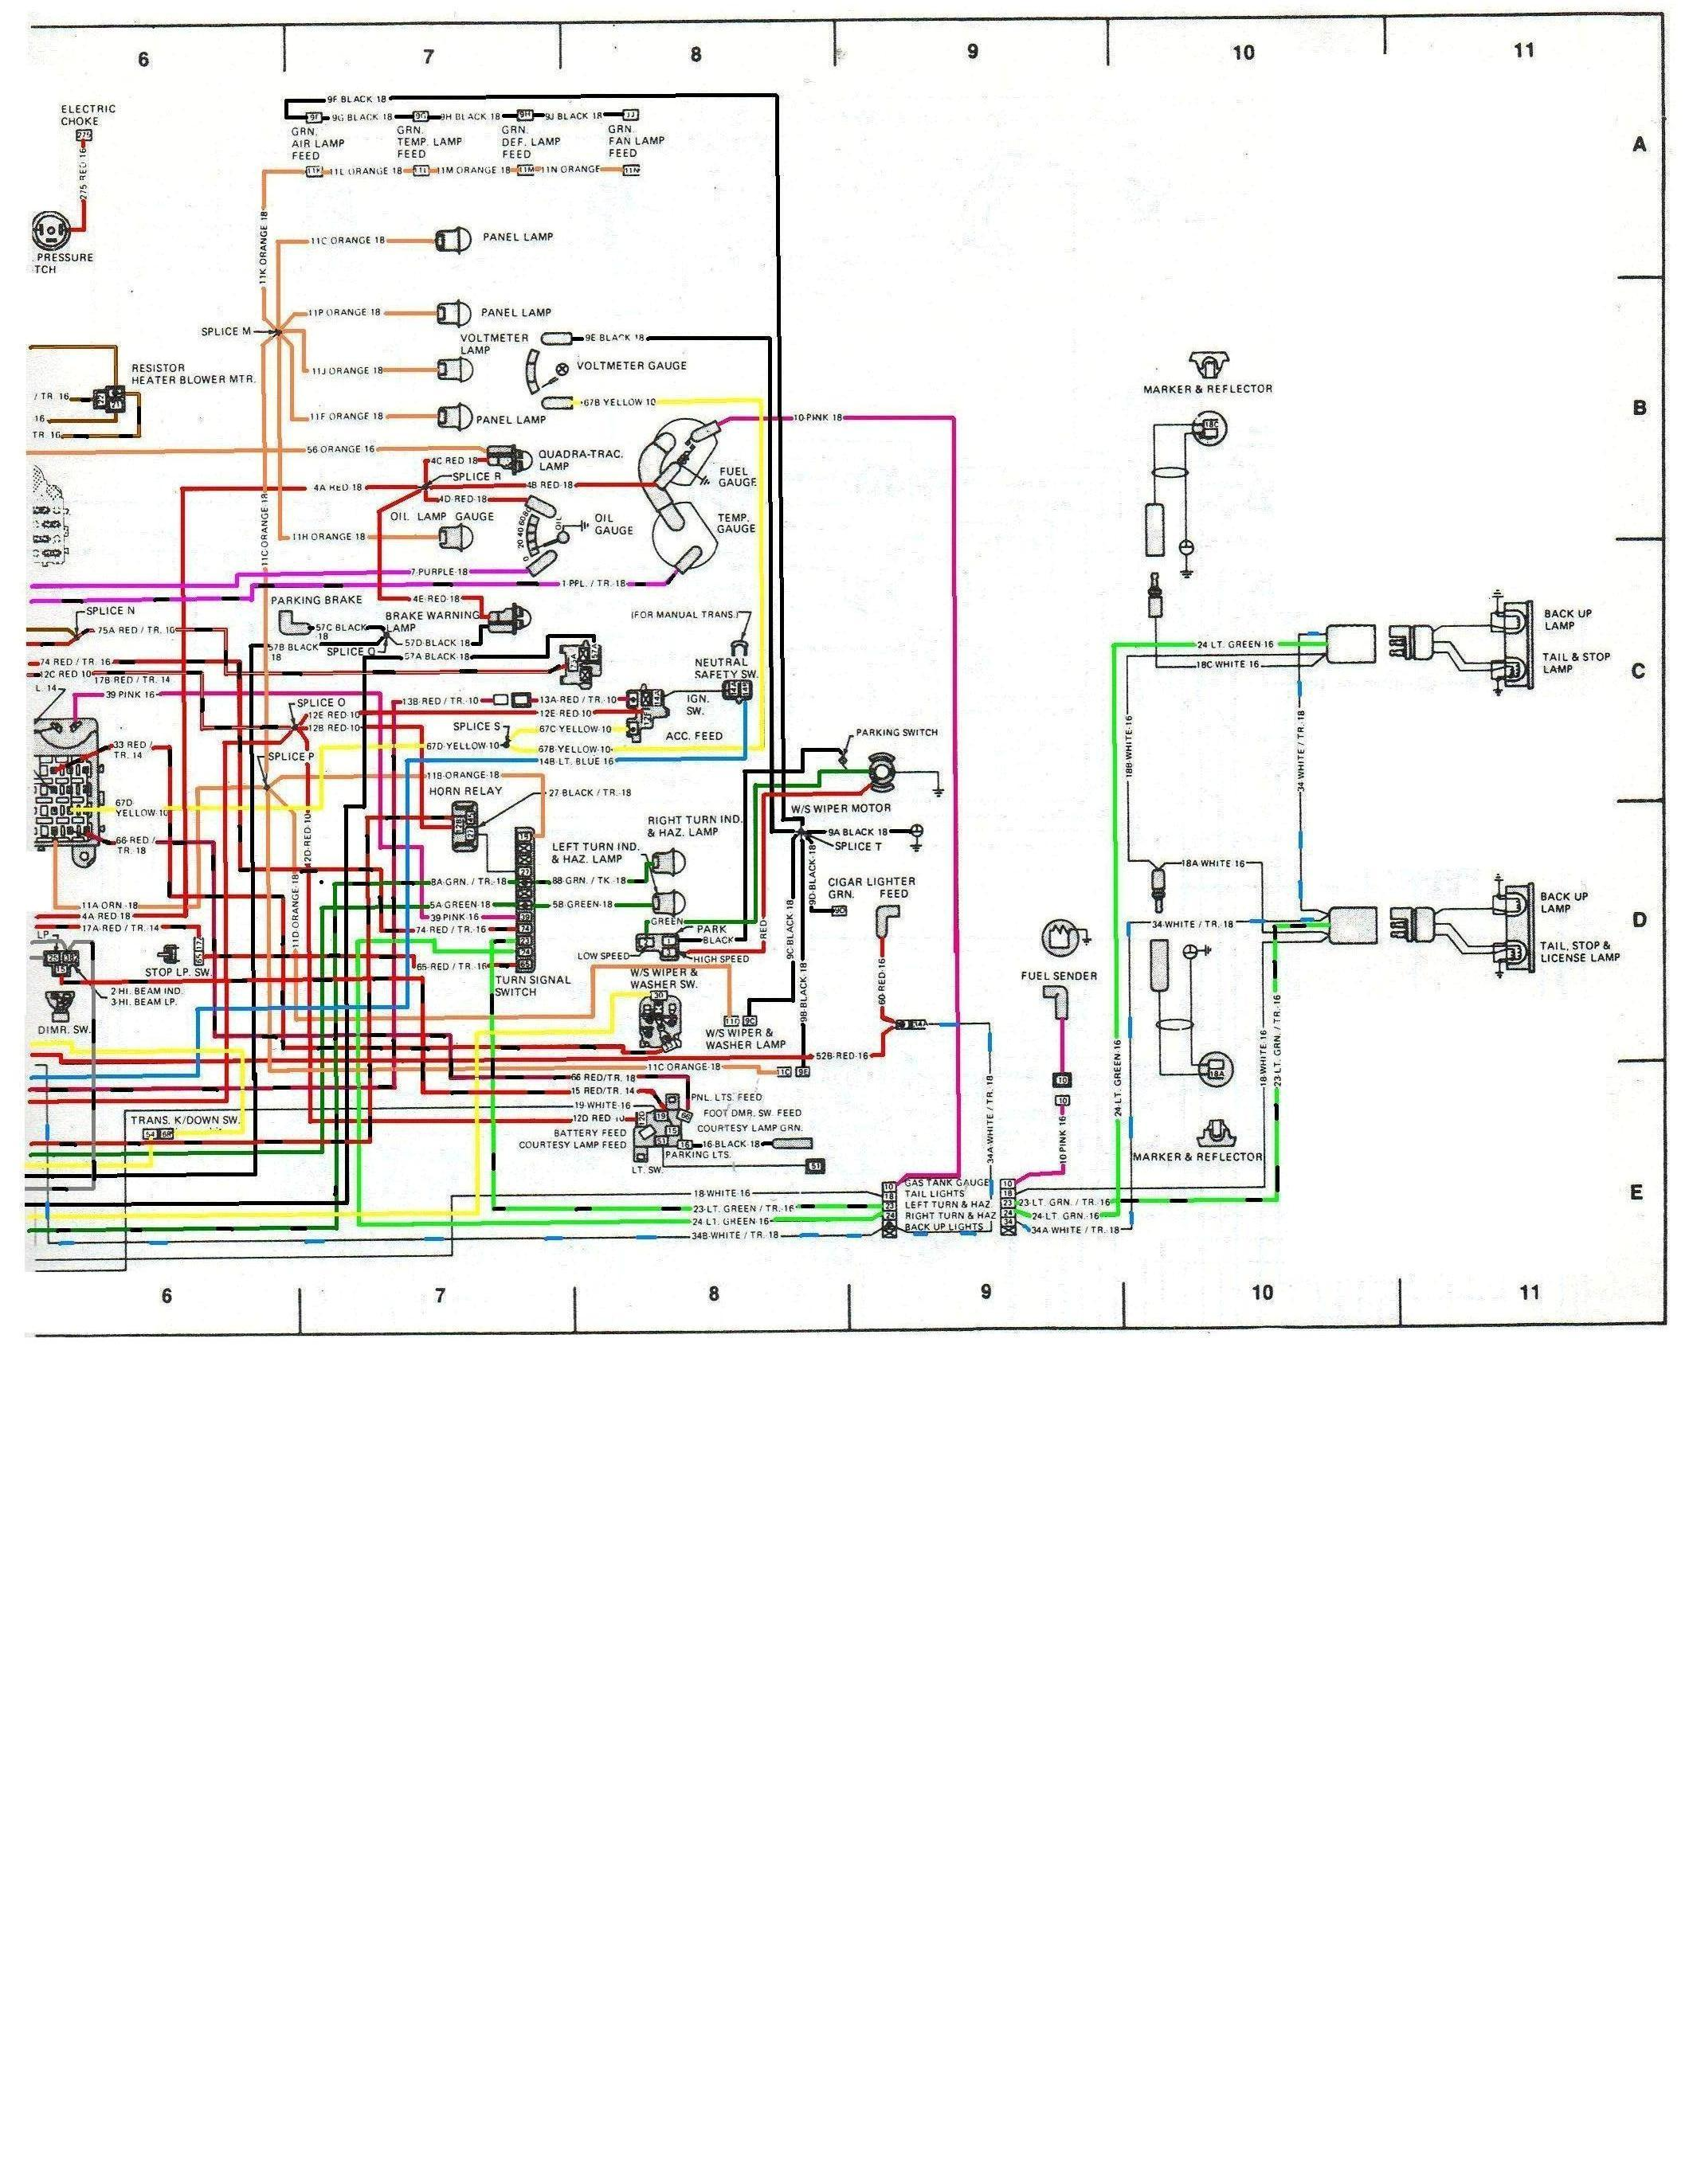 1985 Cj7 Fuse Diagram Simple Wiring Shematics Willys Jeep Hello I Recently Purchased A Project White Hardtop